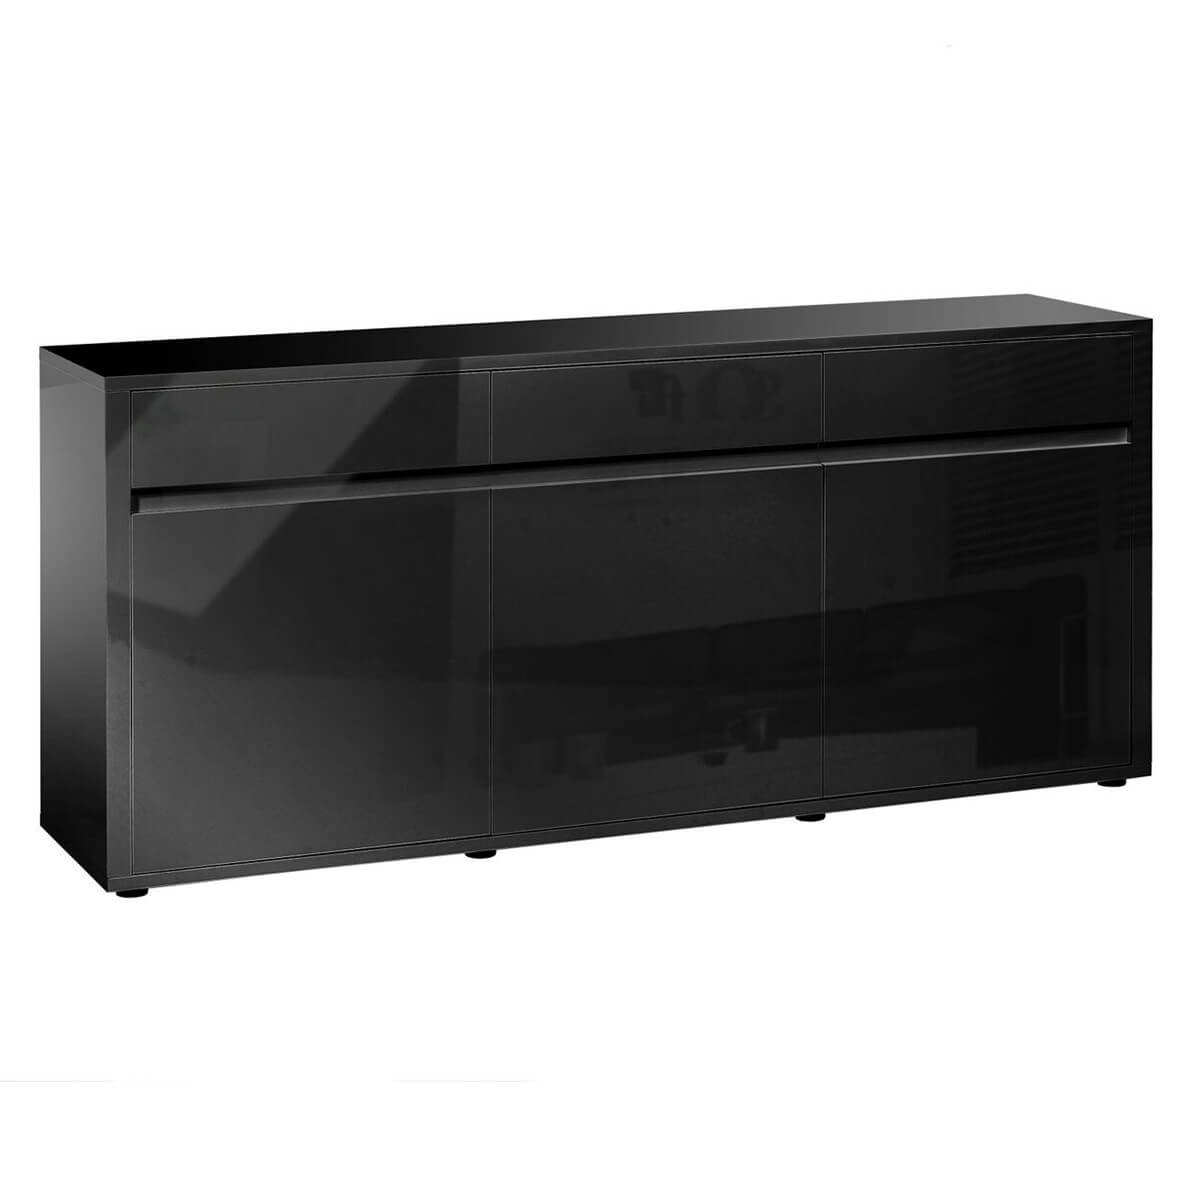 Urbana Black High Gloss Sideboard 3 Door 3 Drawer | Fads With Regard To Most Current Industrial 3 Drawer 3 Door Sideboards (#19 of 20)